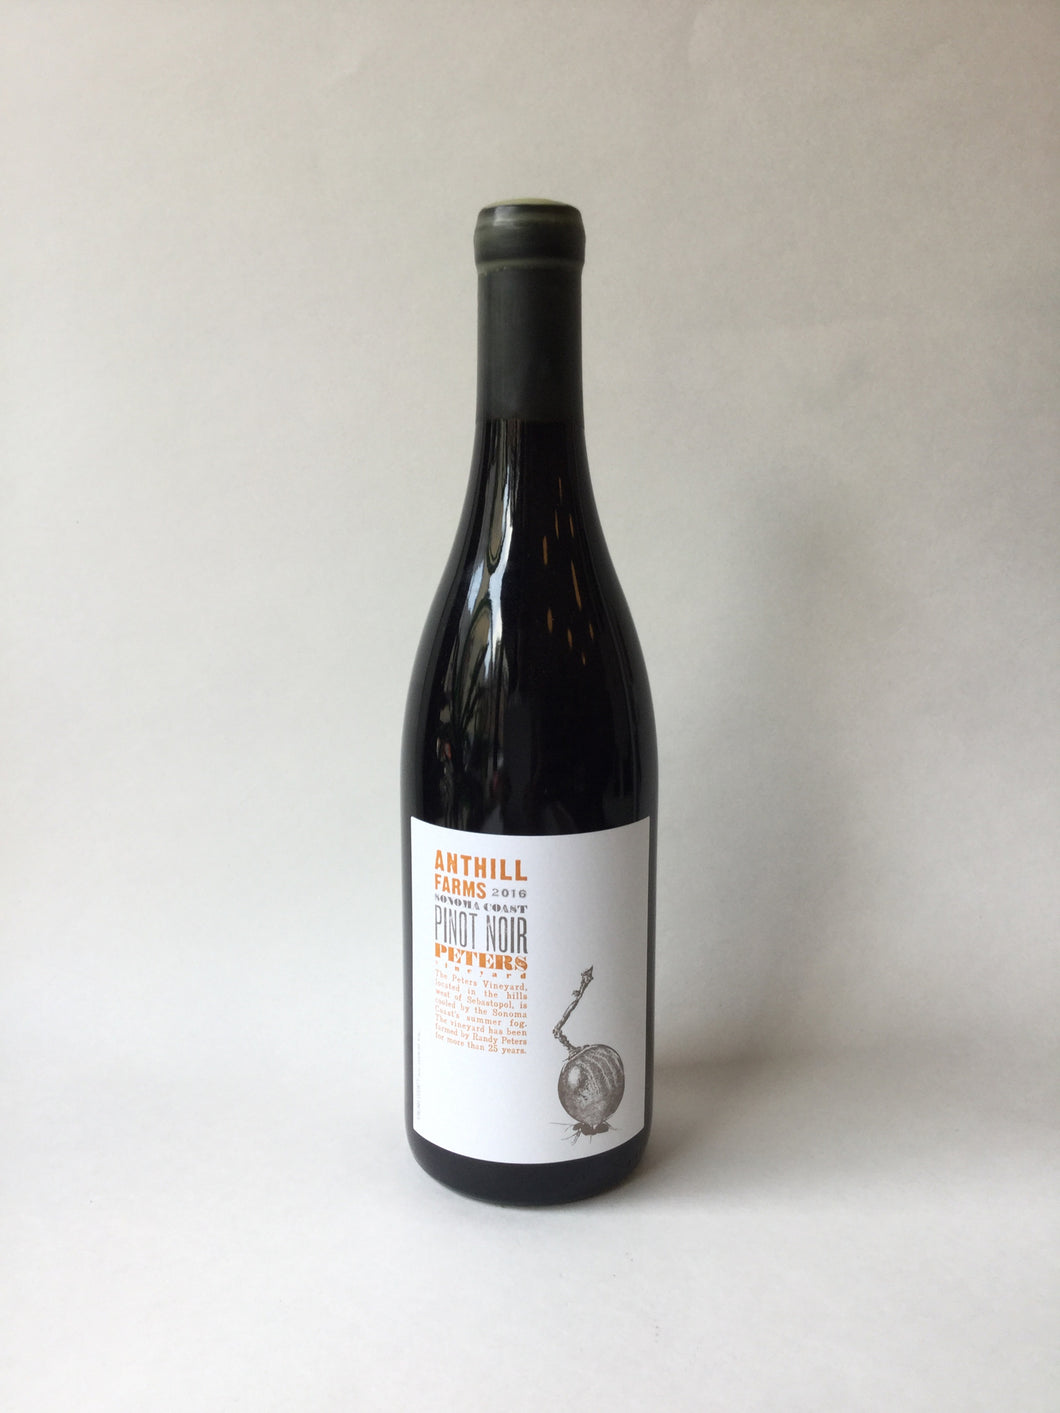 Anthill Farms Sonoma Coast Pinot Noir 'Peters Vineyard' 2016, 750ml - Frankly Wines